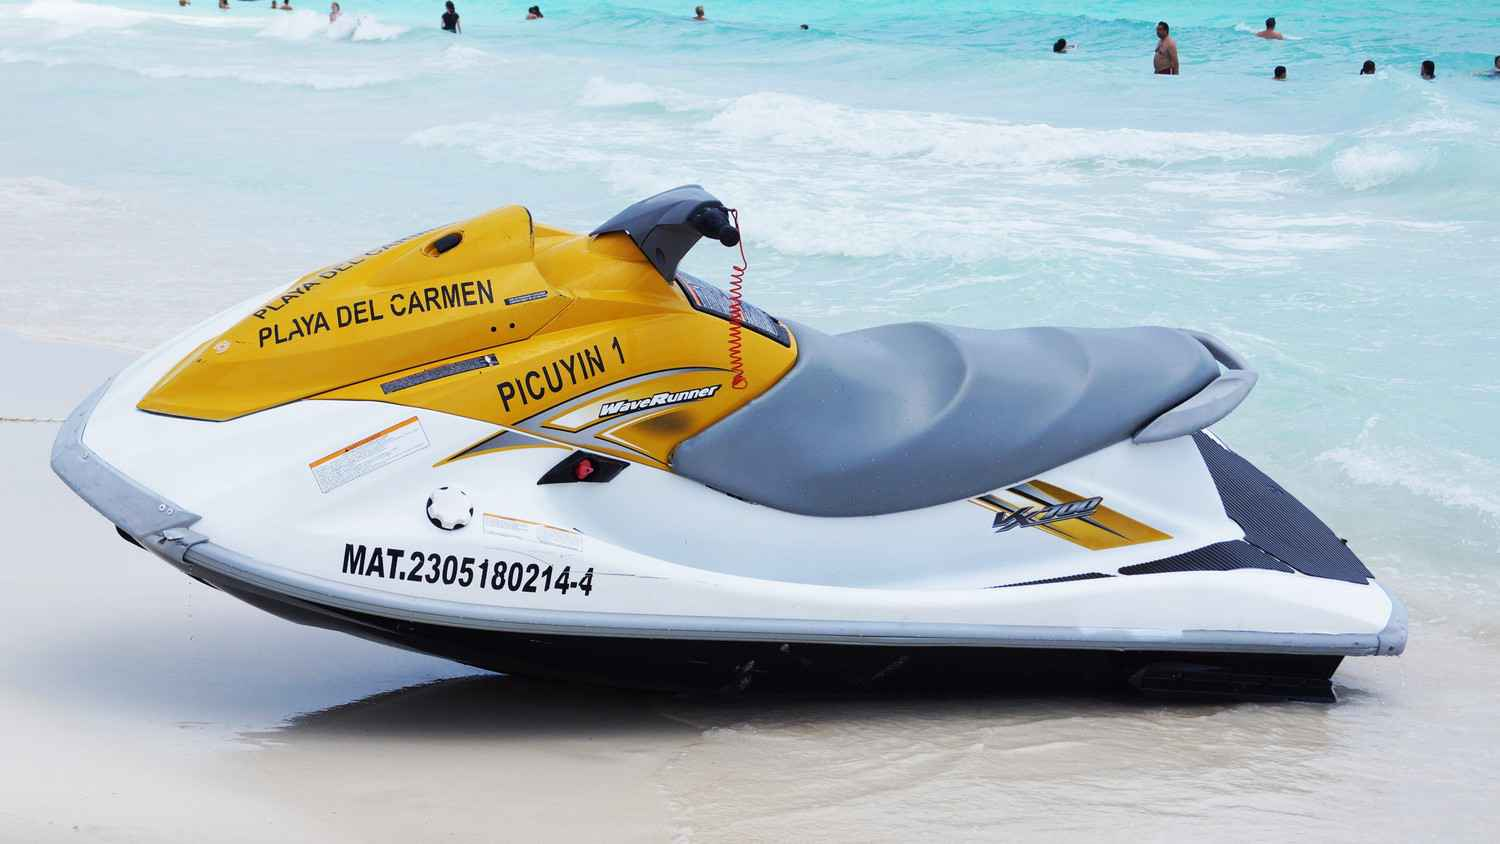 A jet ski for rent on the beach.